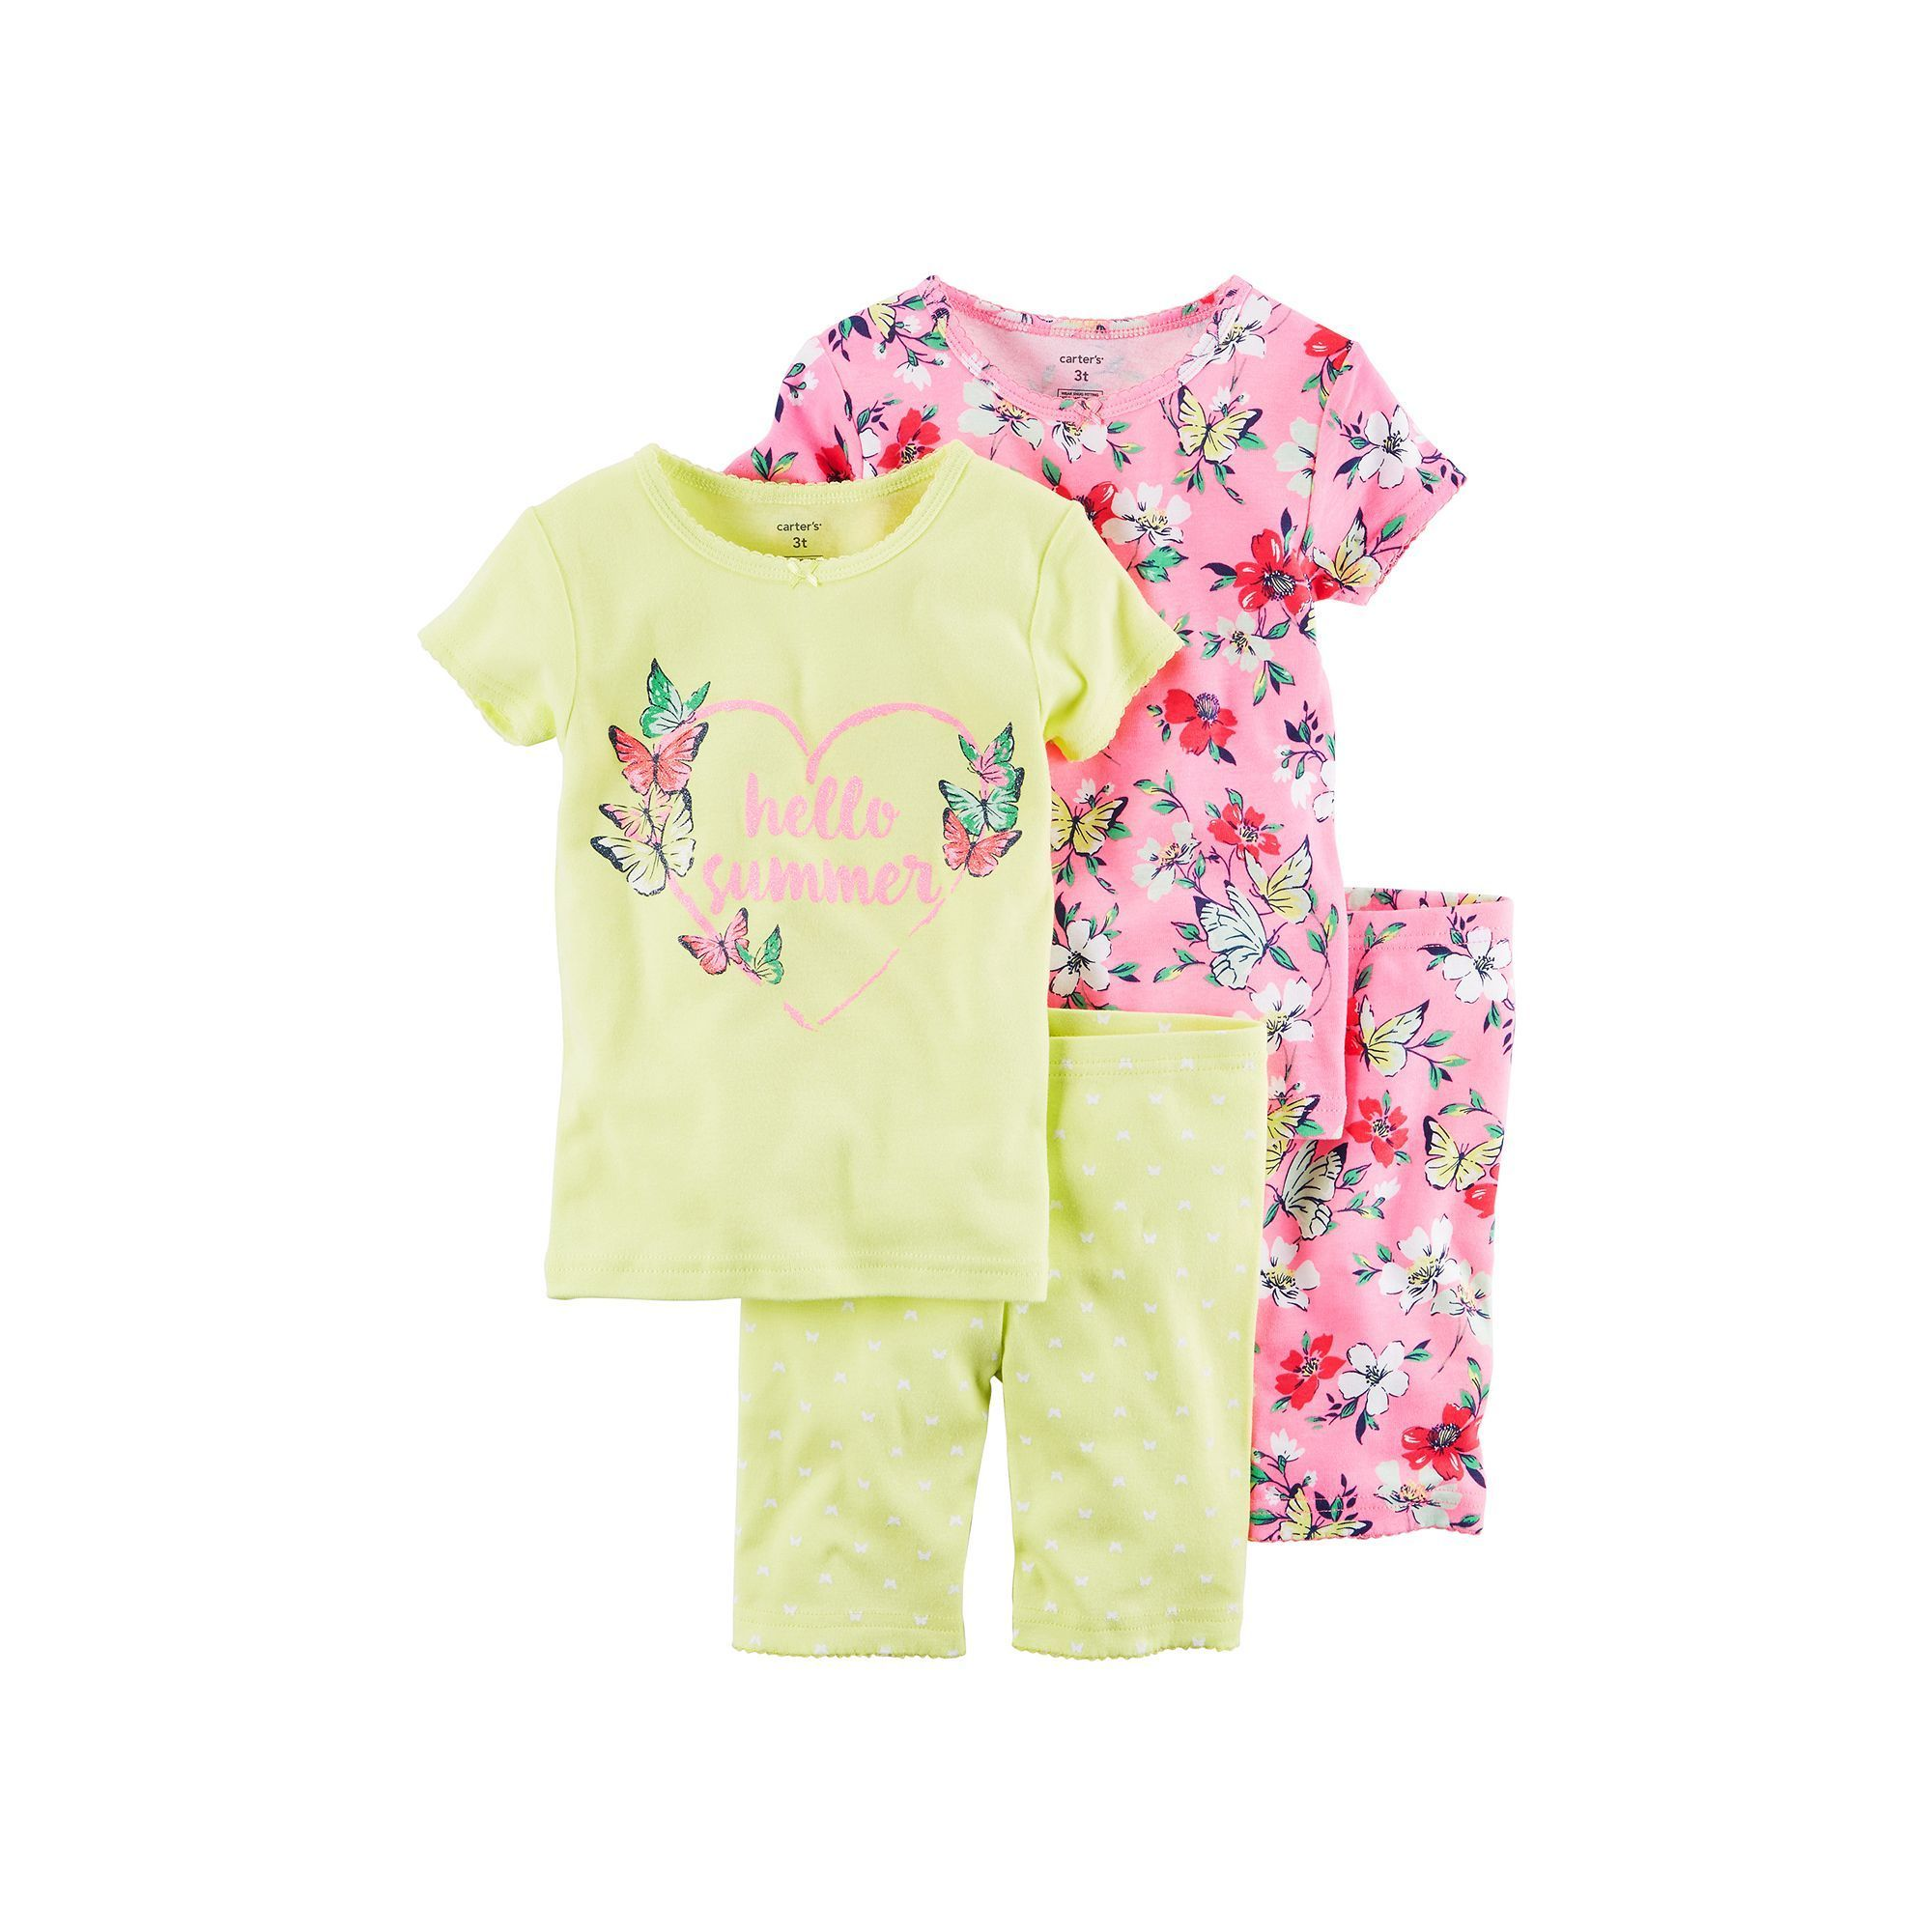 776c4fbbe Girls 4-12 Carter's 4-pc. Graphic Pajama Set, Girl's, Size: 10, Pink